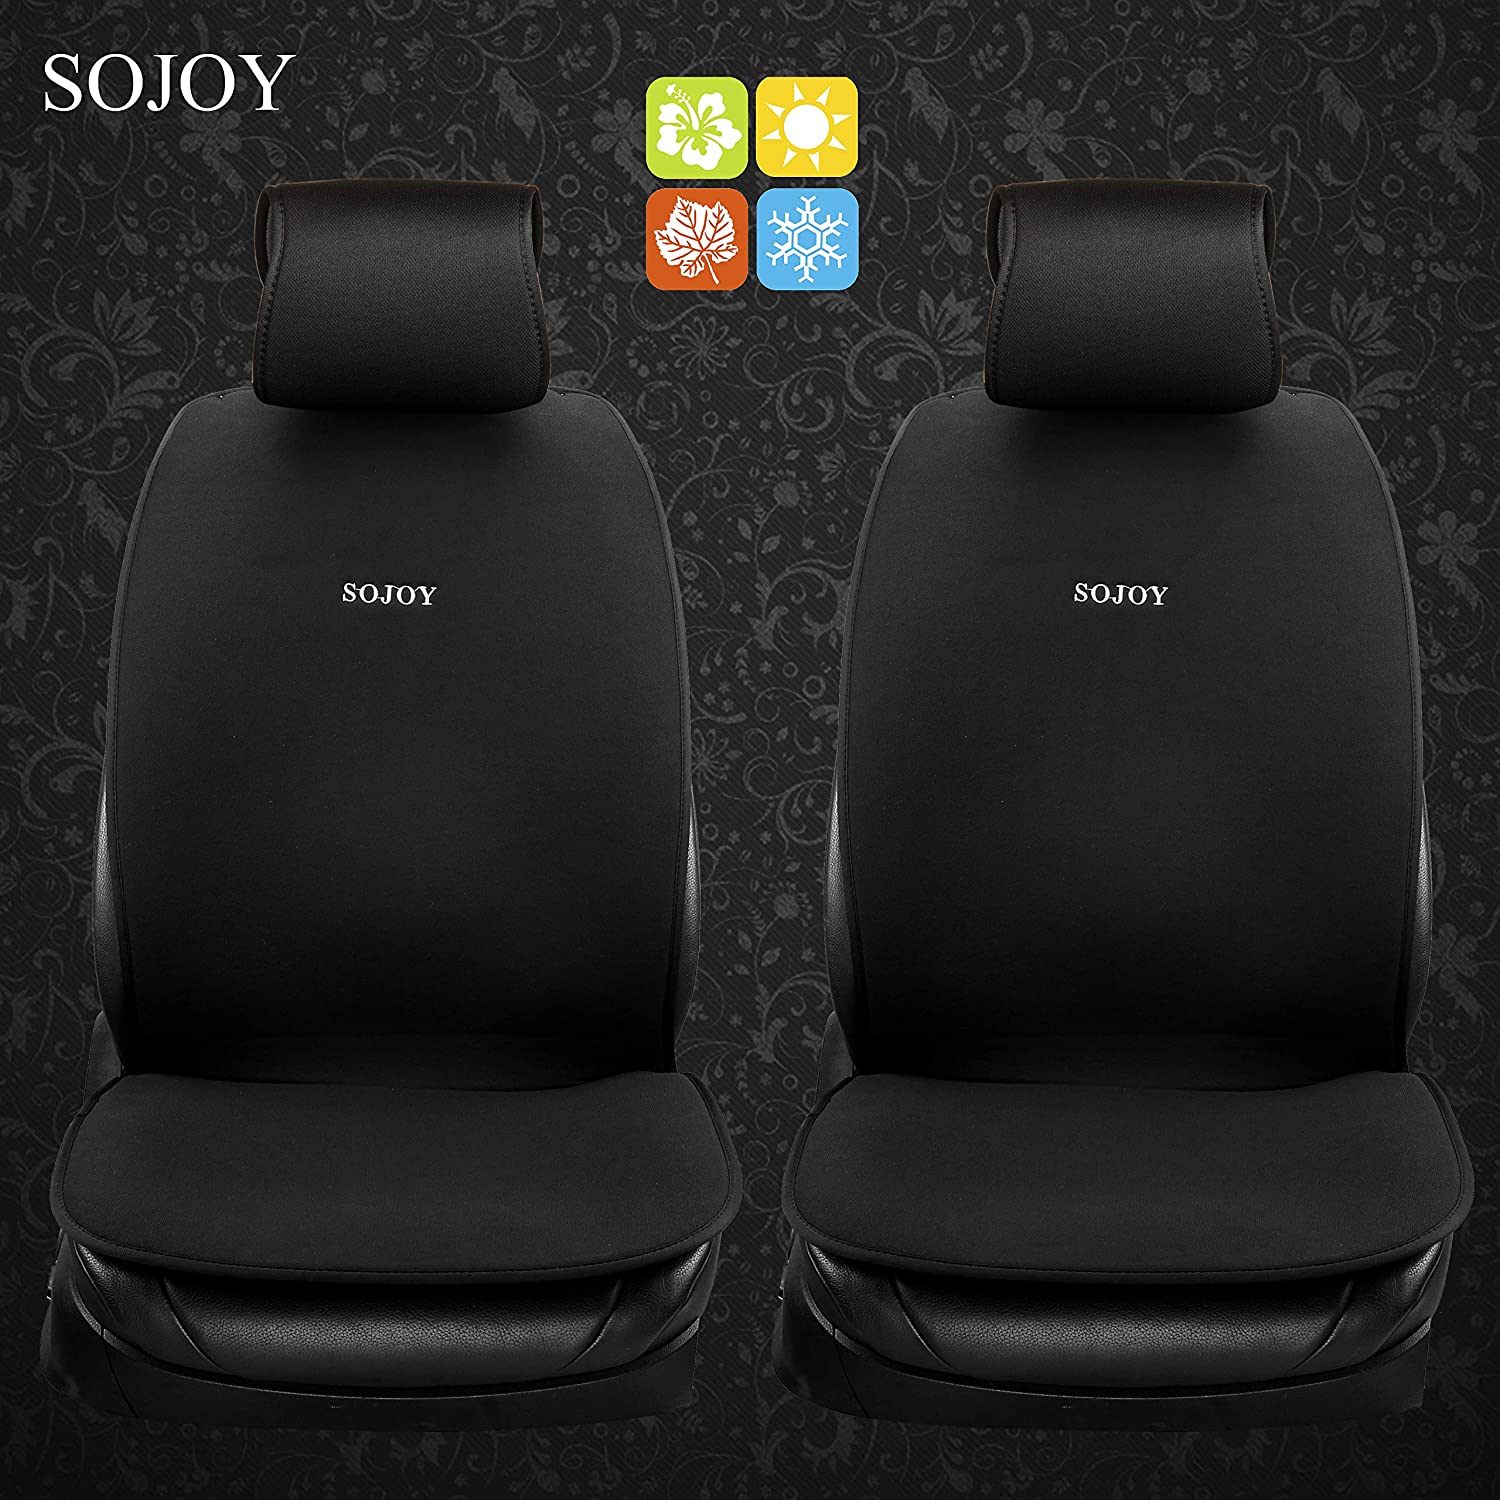 Black Sojoy Universal Four Season Fashionable Car Seat Cushion Cover for Front of 2 Seats